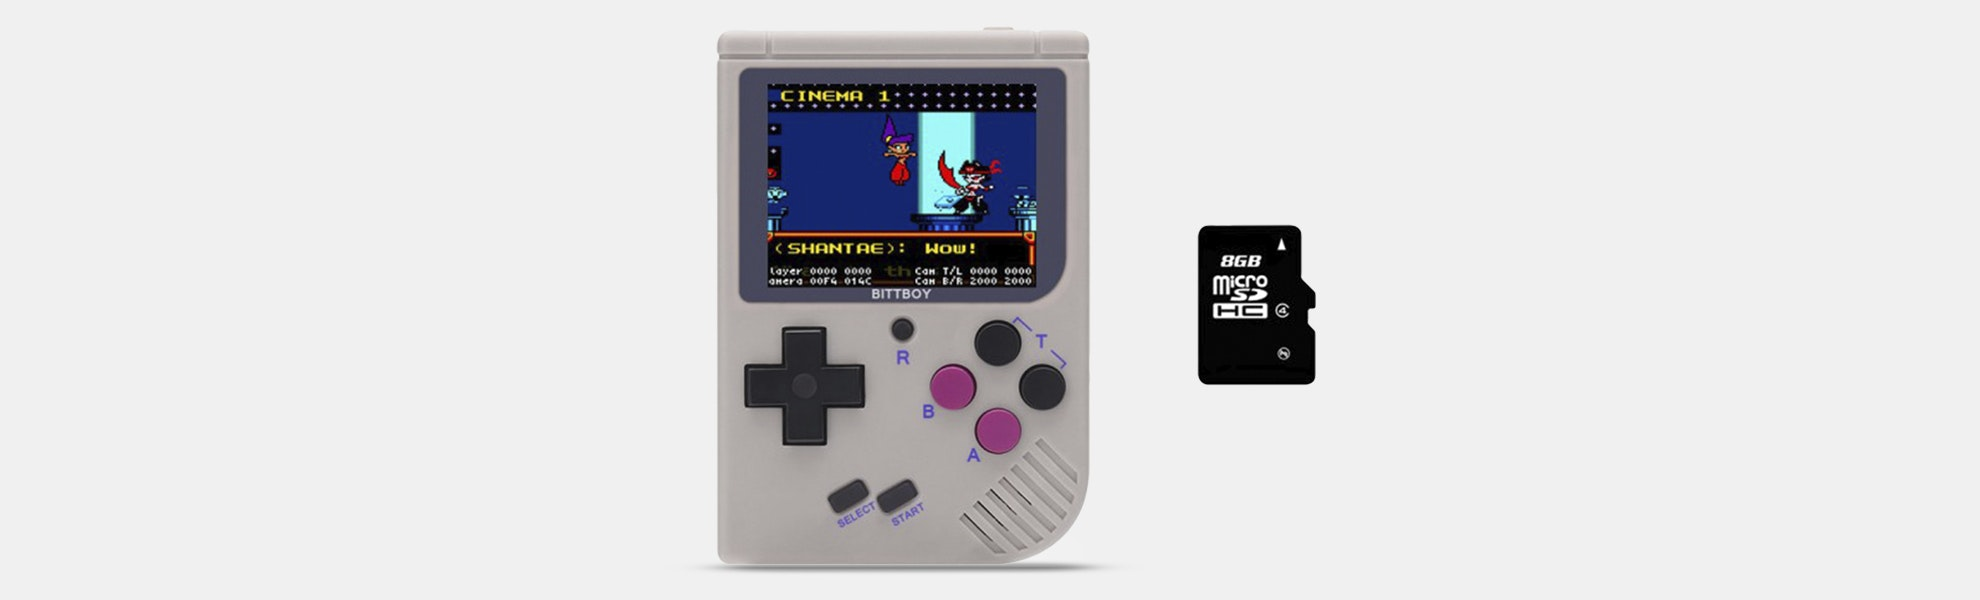 New BittBoy Portable Retro Gaming Console